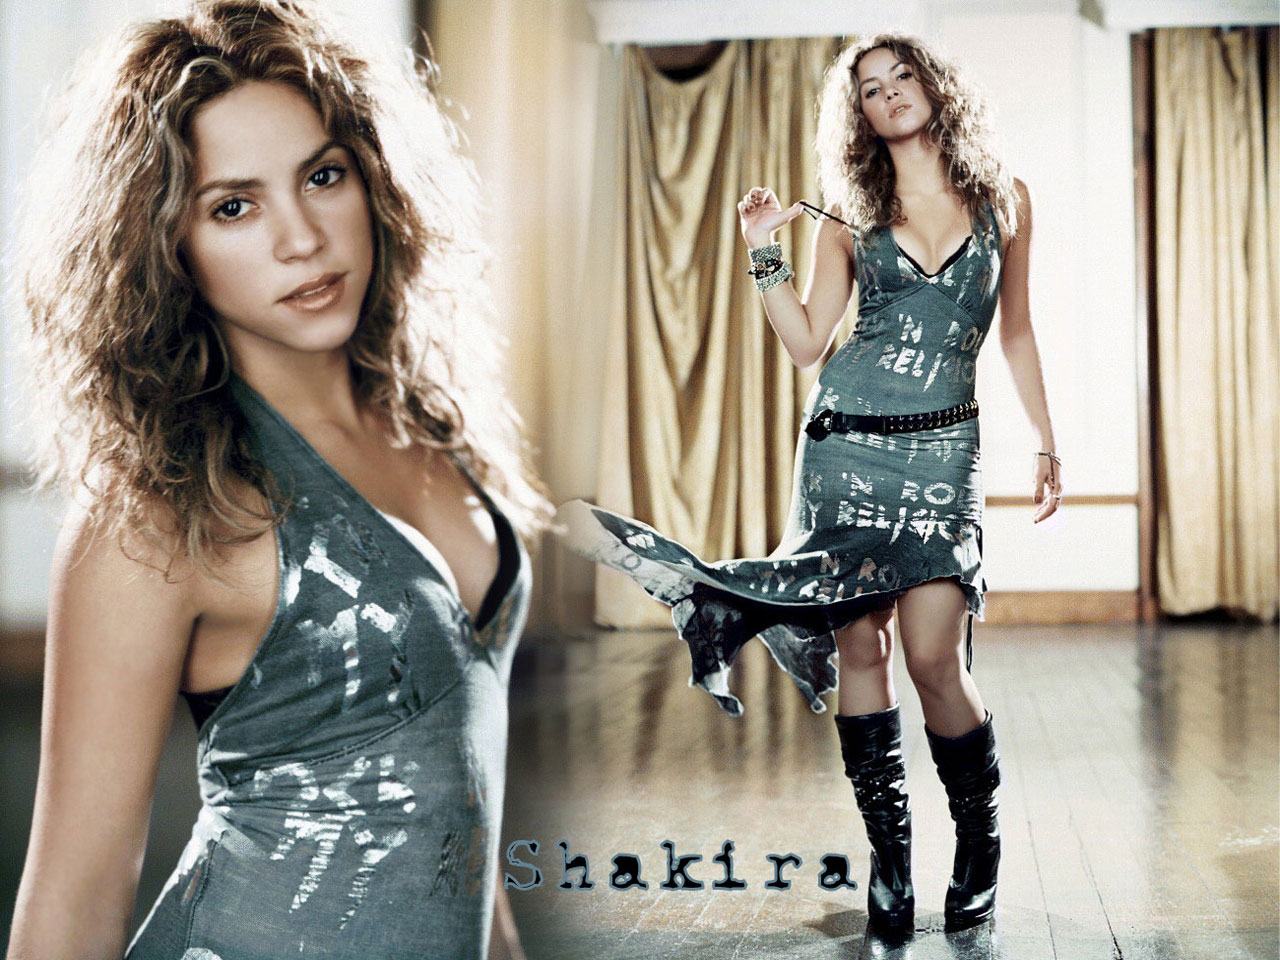 Shakira Beautiful Fresh HD Pictures Wallpapers HD Wallpapers photos 1280x960